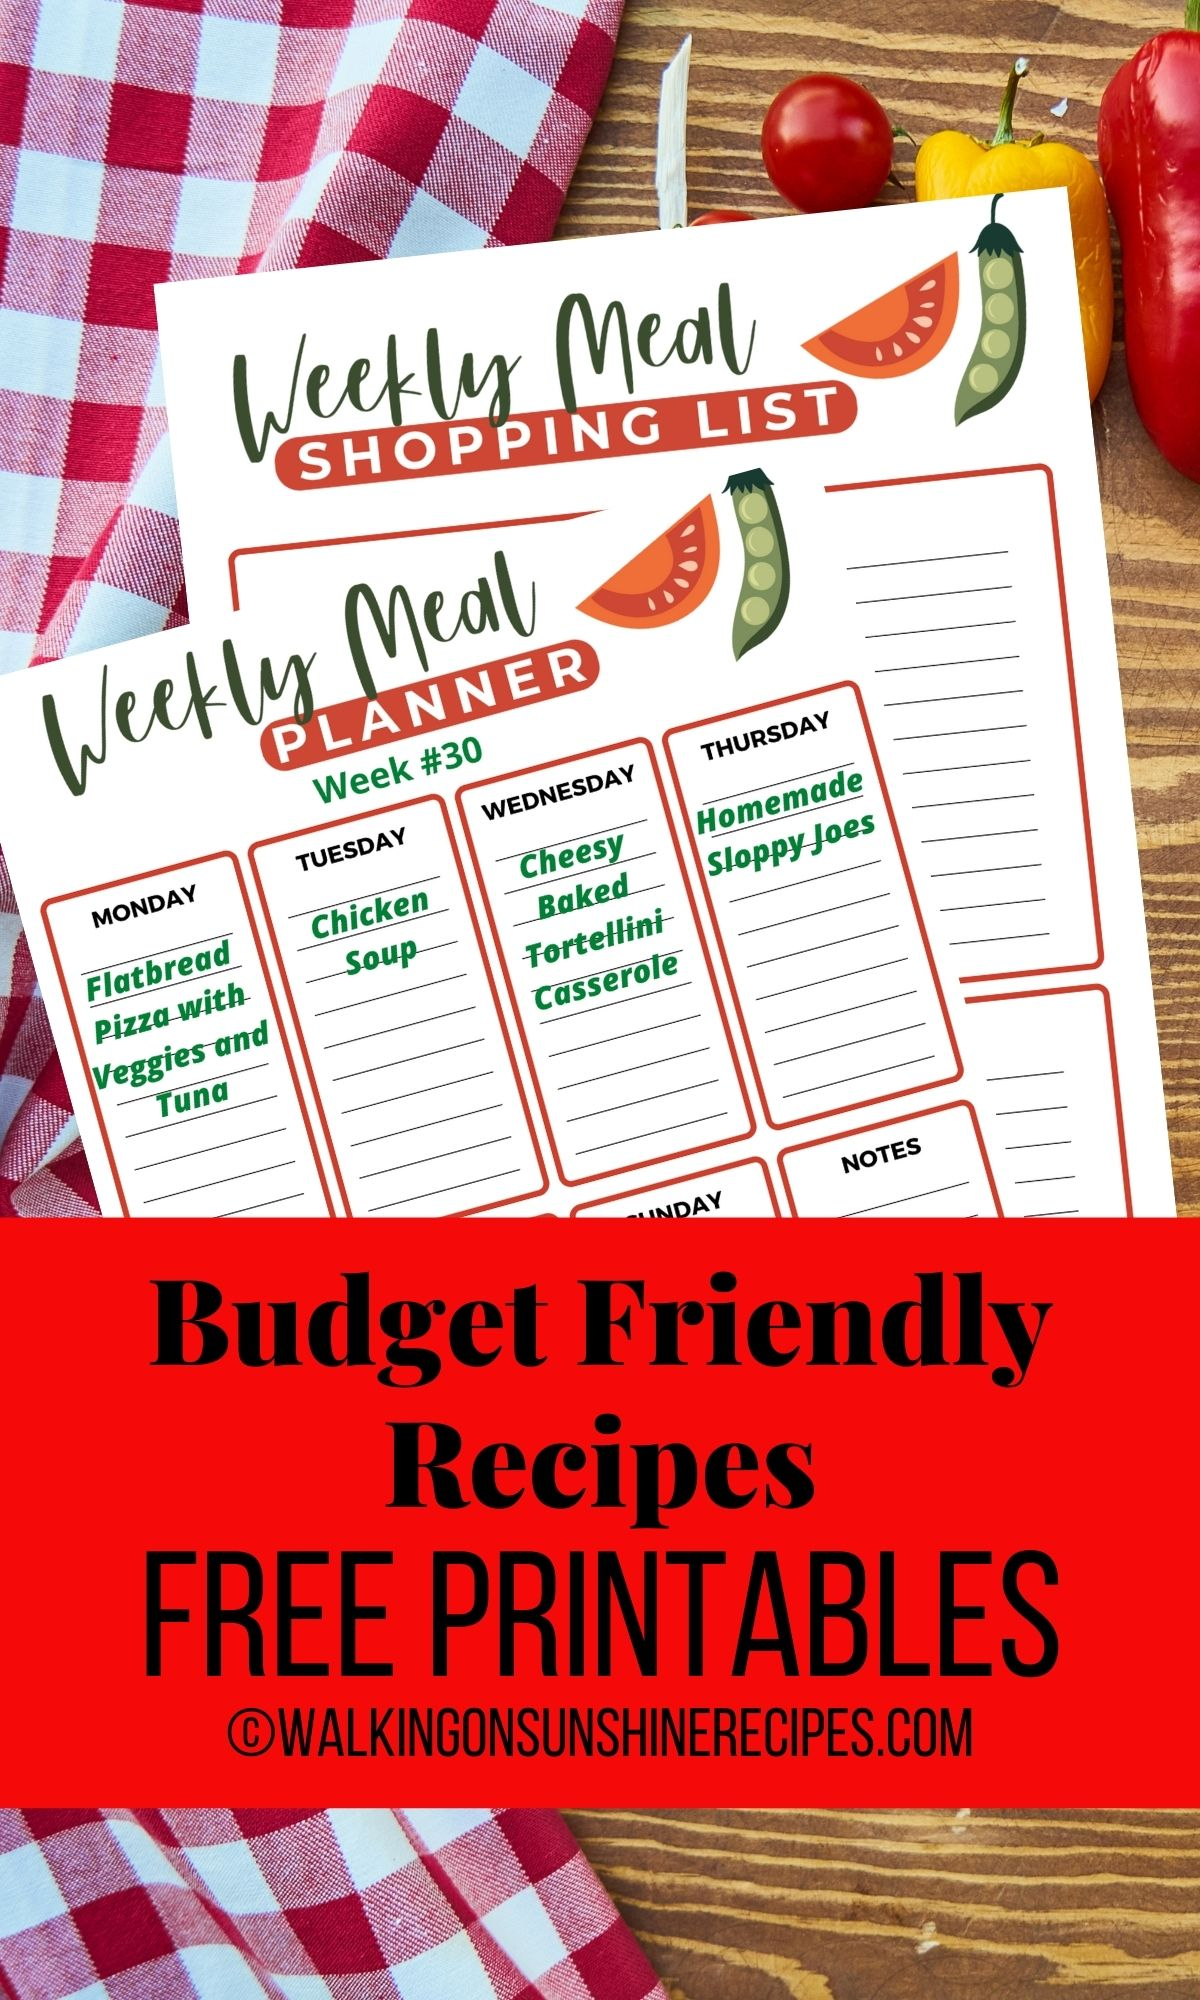 printable meal plans, shopping list and freezer list.